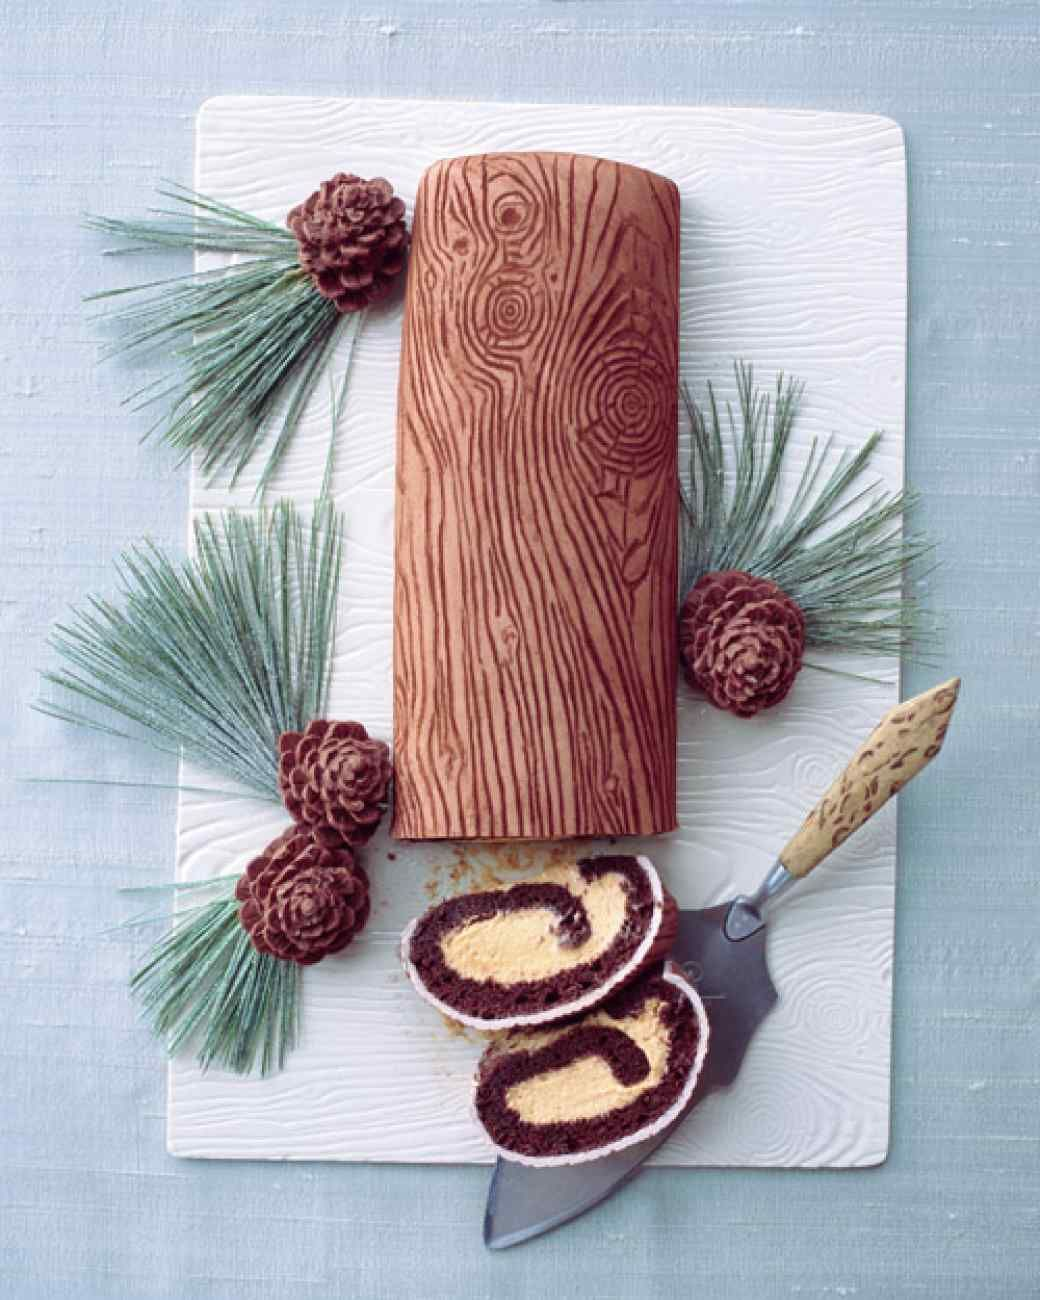 How to make a christmas yule log decoration - Christmas Cake Decorations That Will Dazzle And Delight